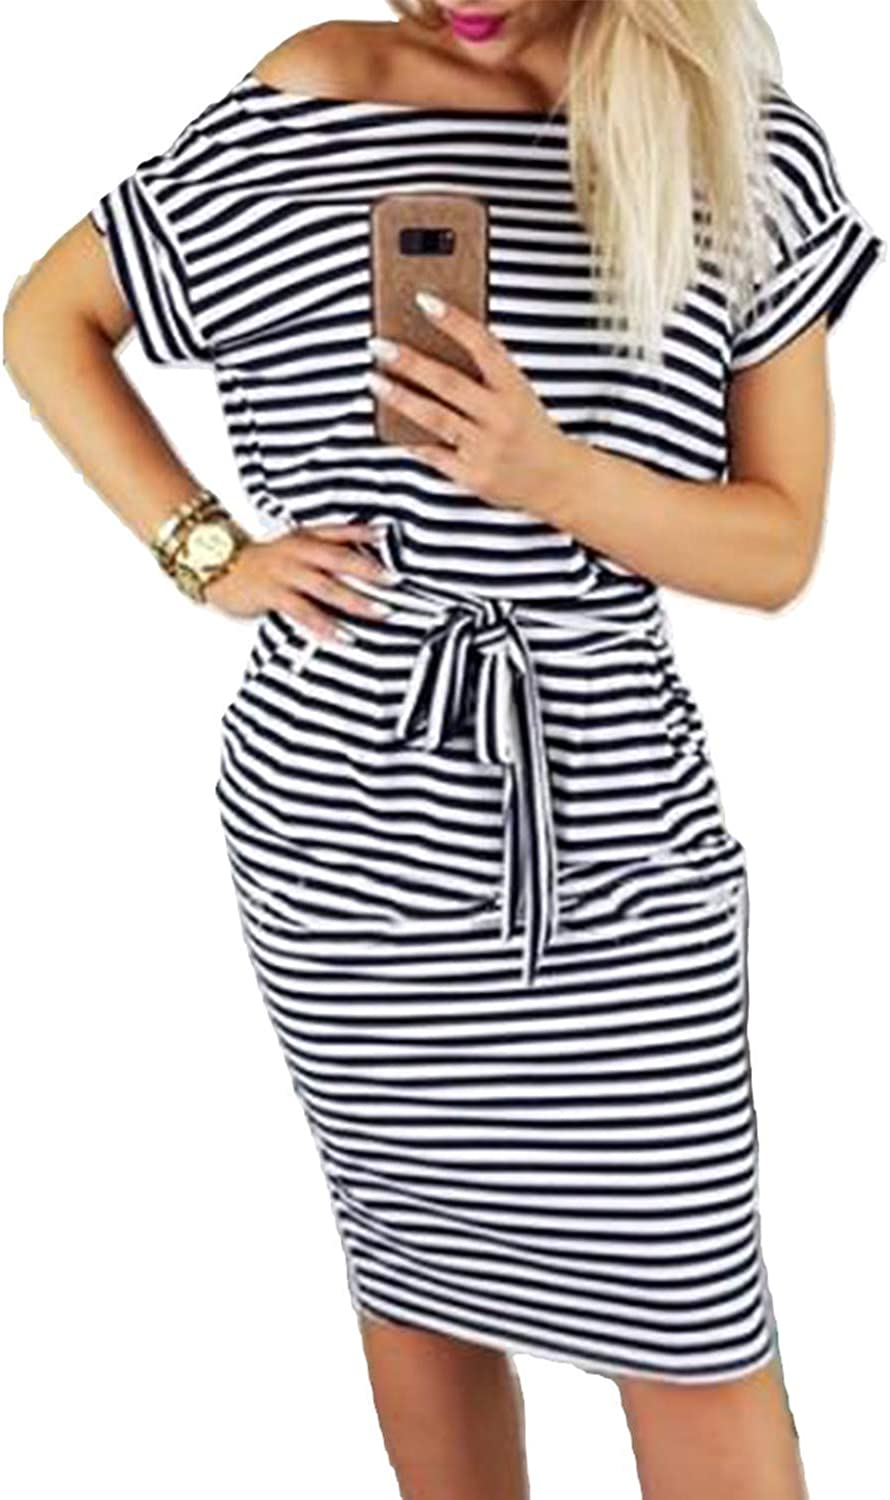 XL to 1X  Stripes and more Stripes